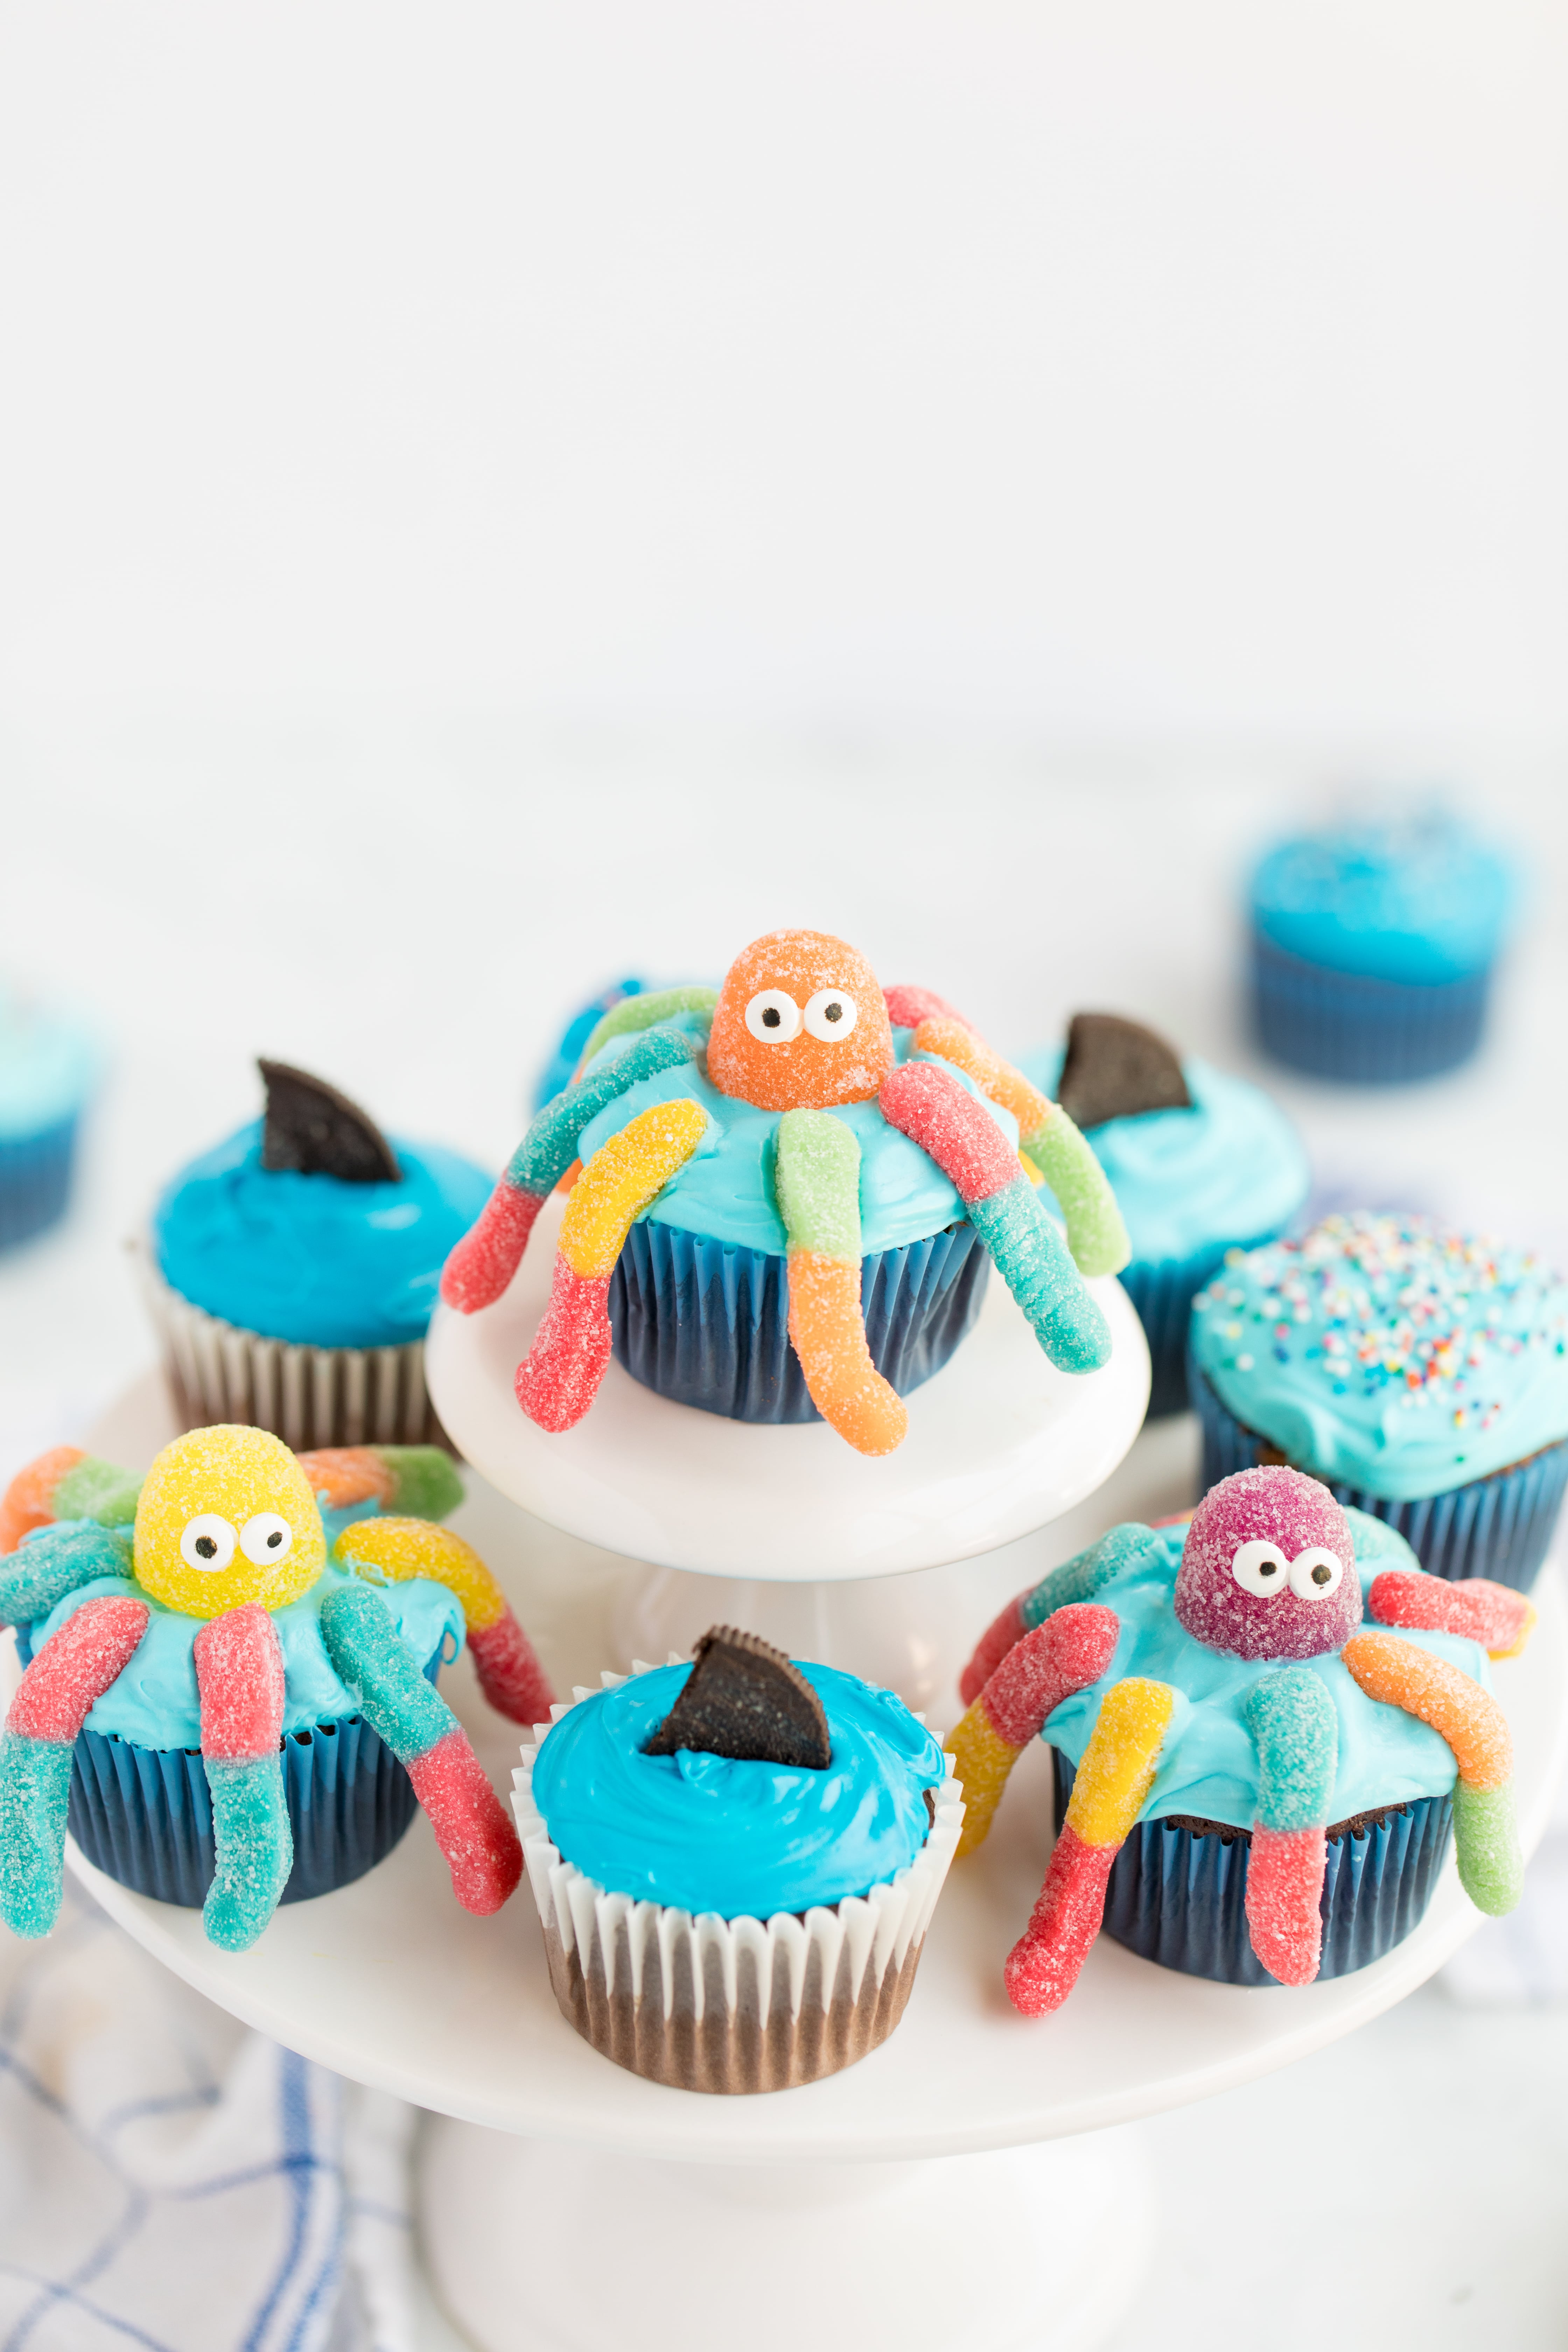 Octopus Cupcakes on Cupcake Stand